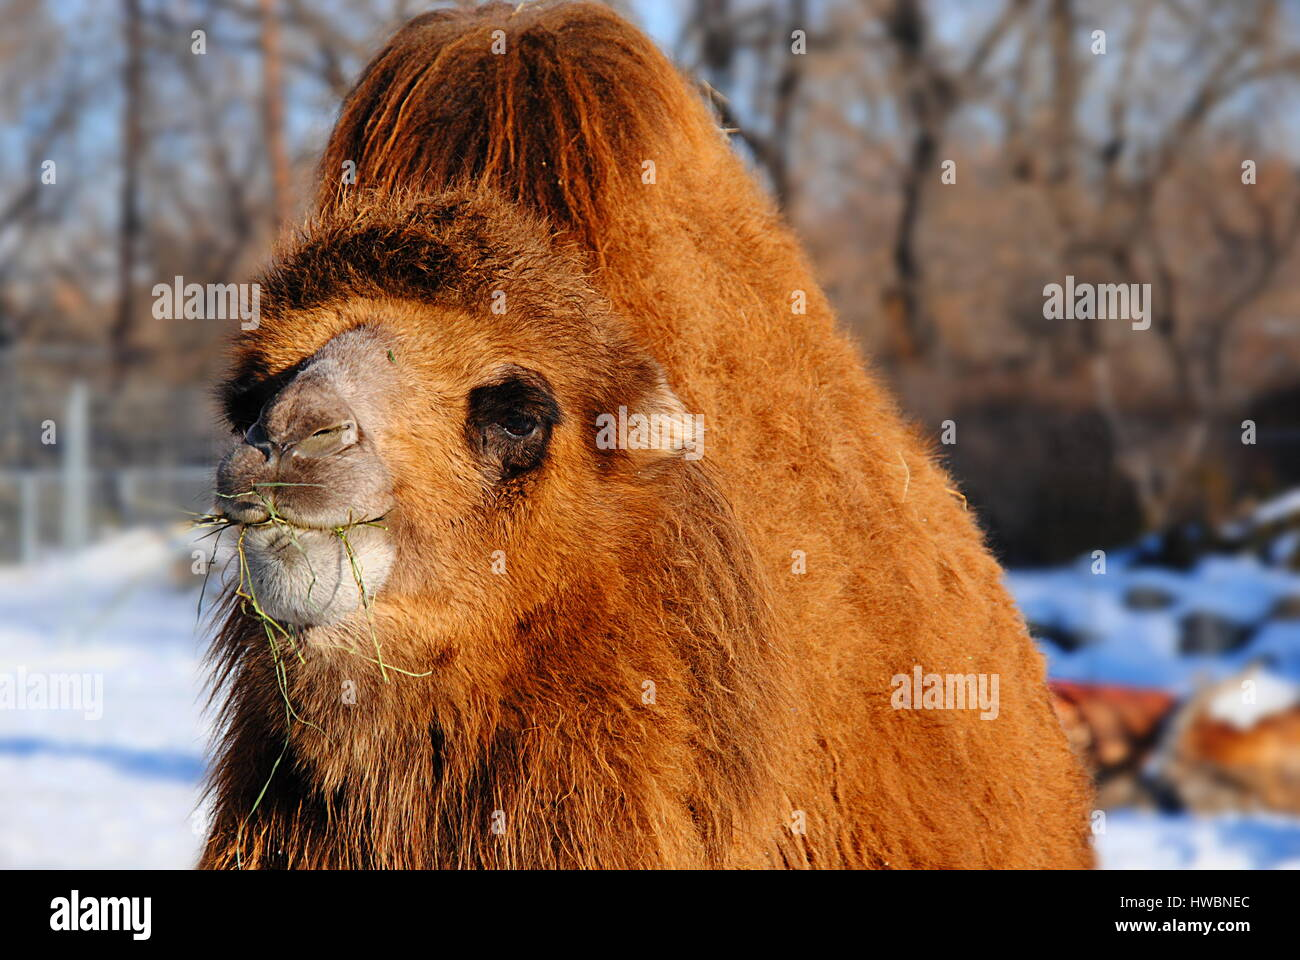 bactrian camel eating in the calgary zoo, canada - Stock Image